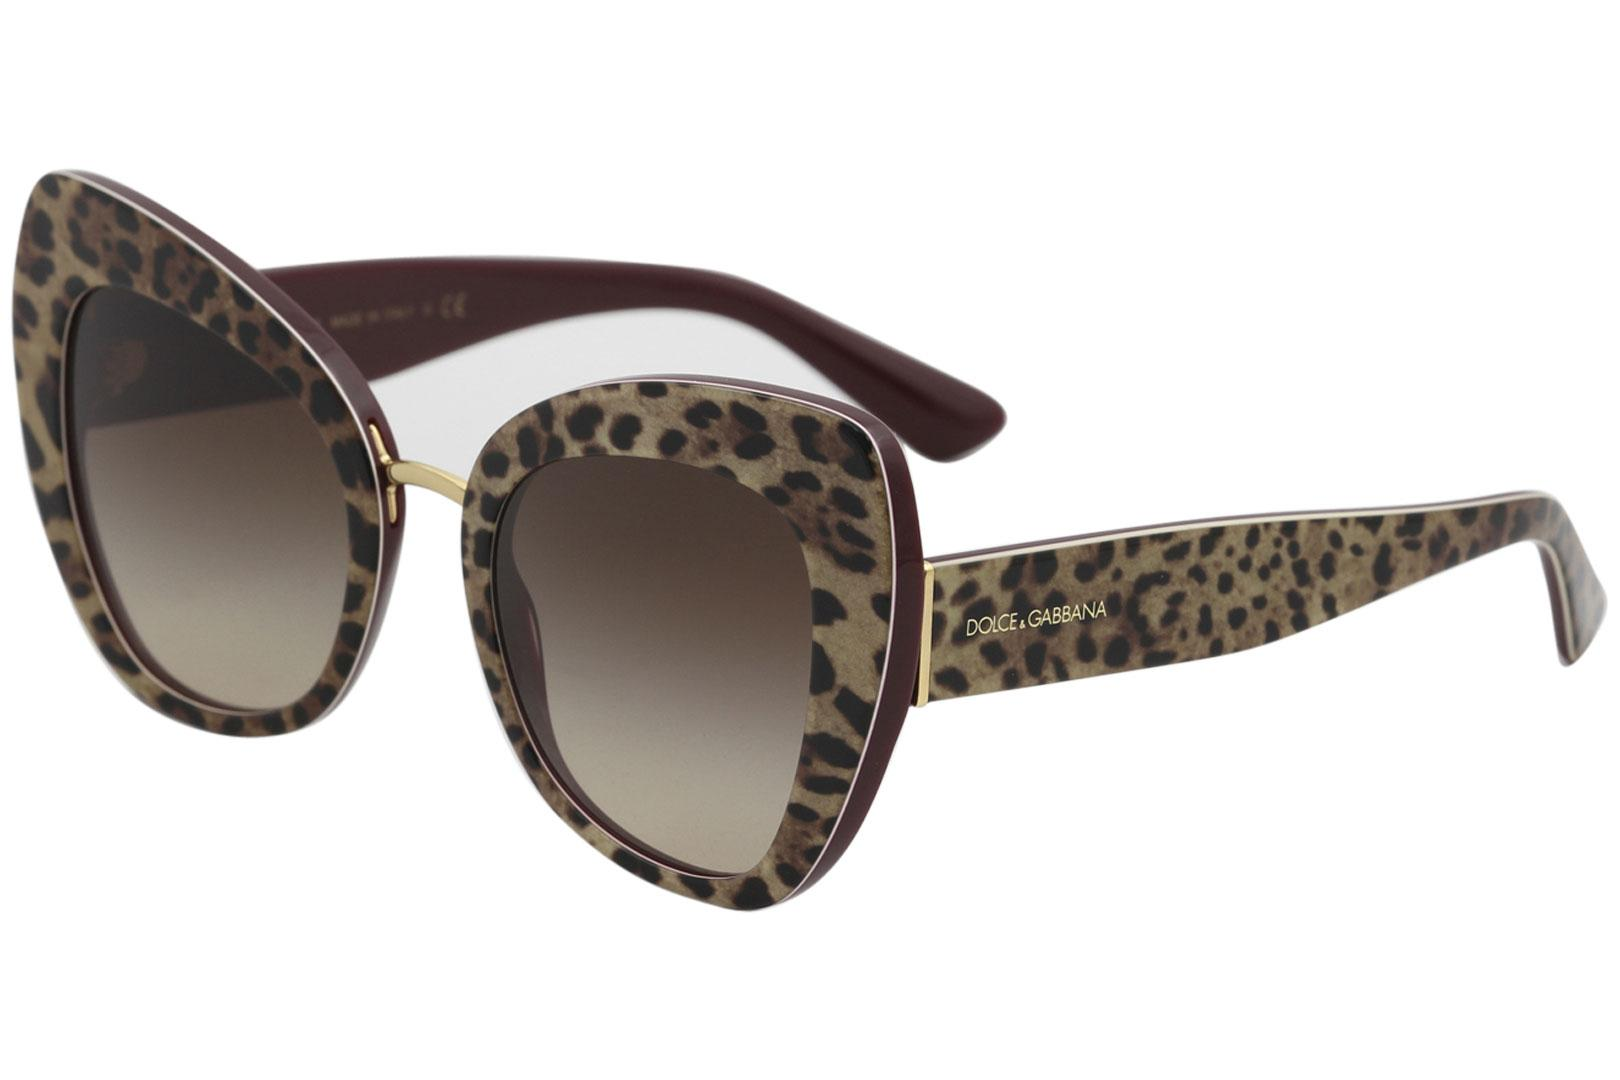 0eb9a4eabe5 Dolce   Gabbana Women s D G DG4319 DG 4319 Fashion Cat Eye Sunglasses by  Dolce   Gabbana